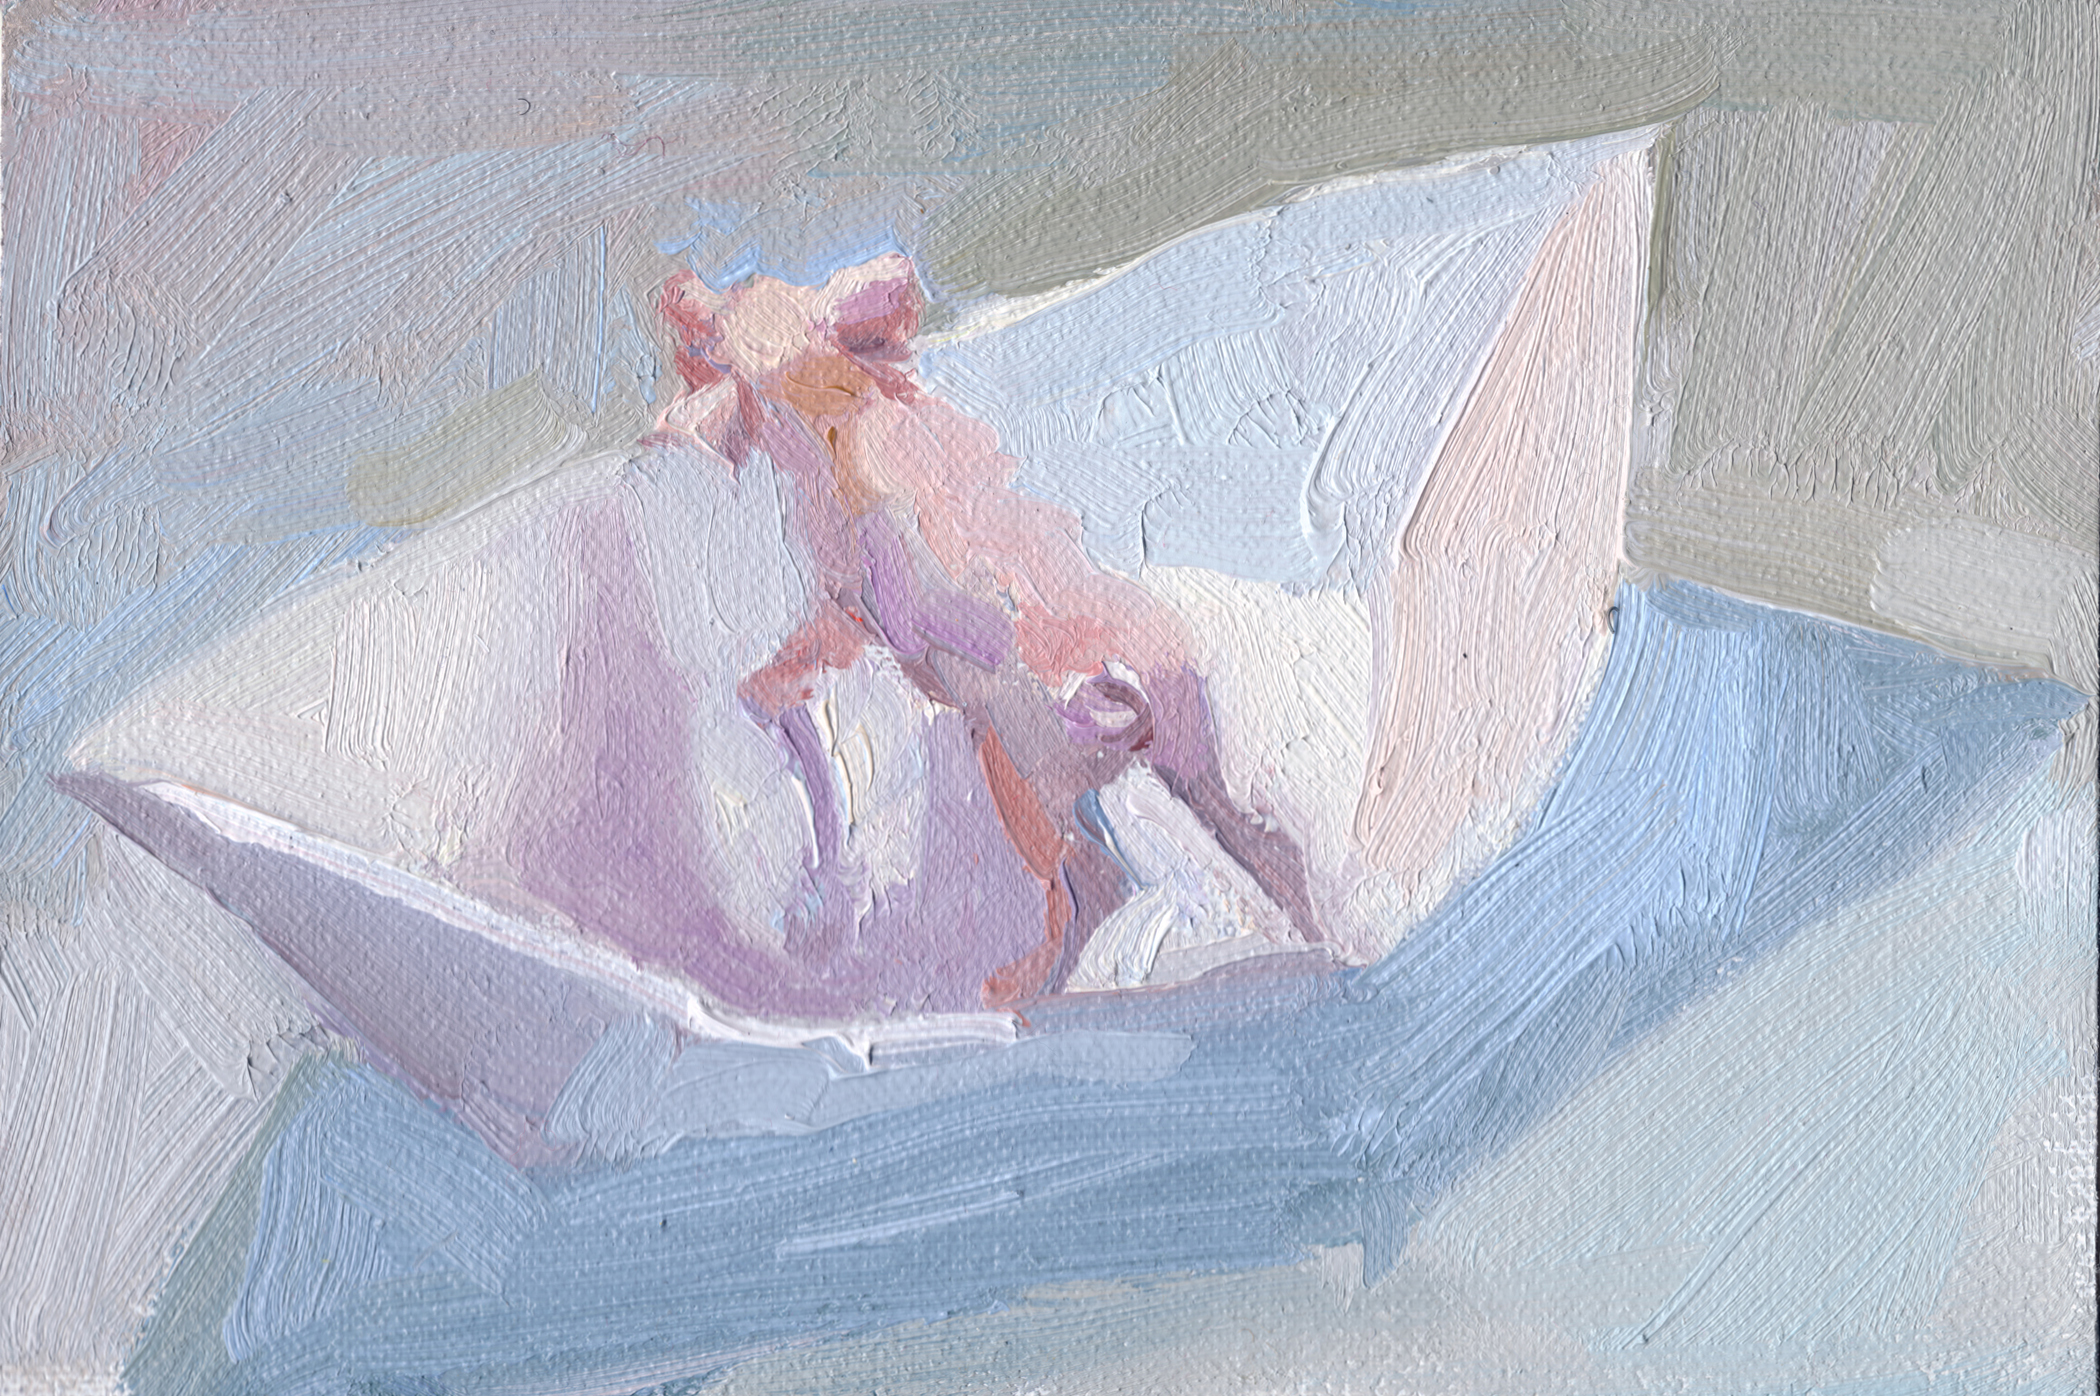 "In It, 2010, 4"" x 6"", oil on linen mounted on panel"